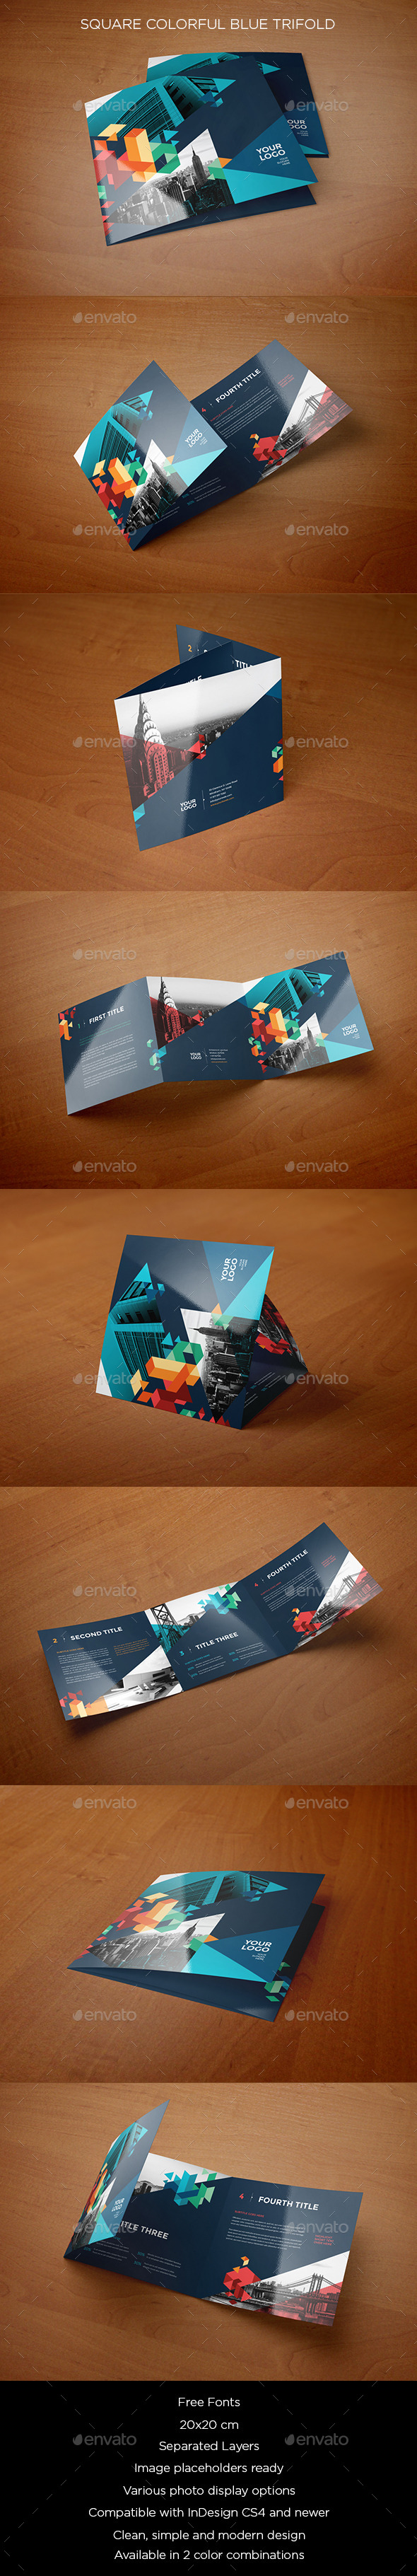 Square Colorful Blue Trifold - Brochures Print Templates